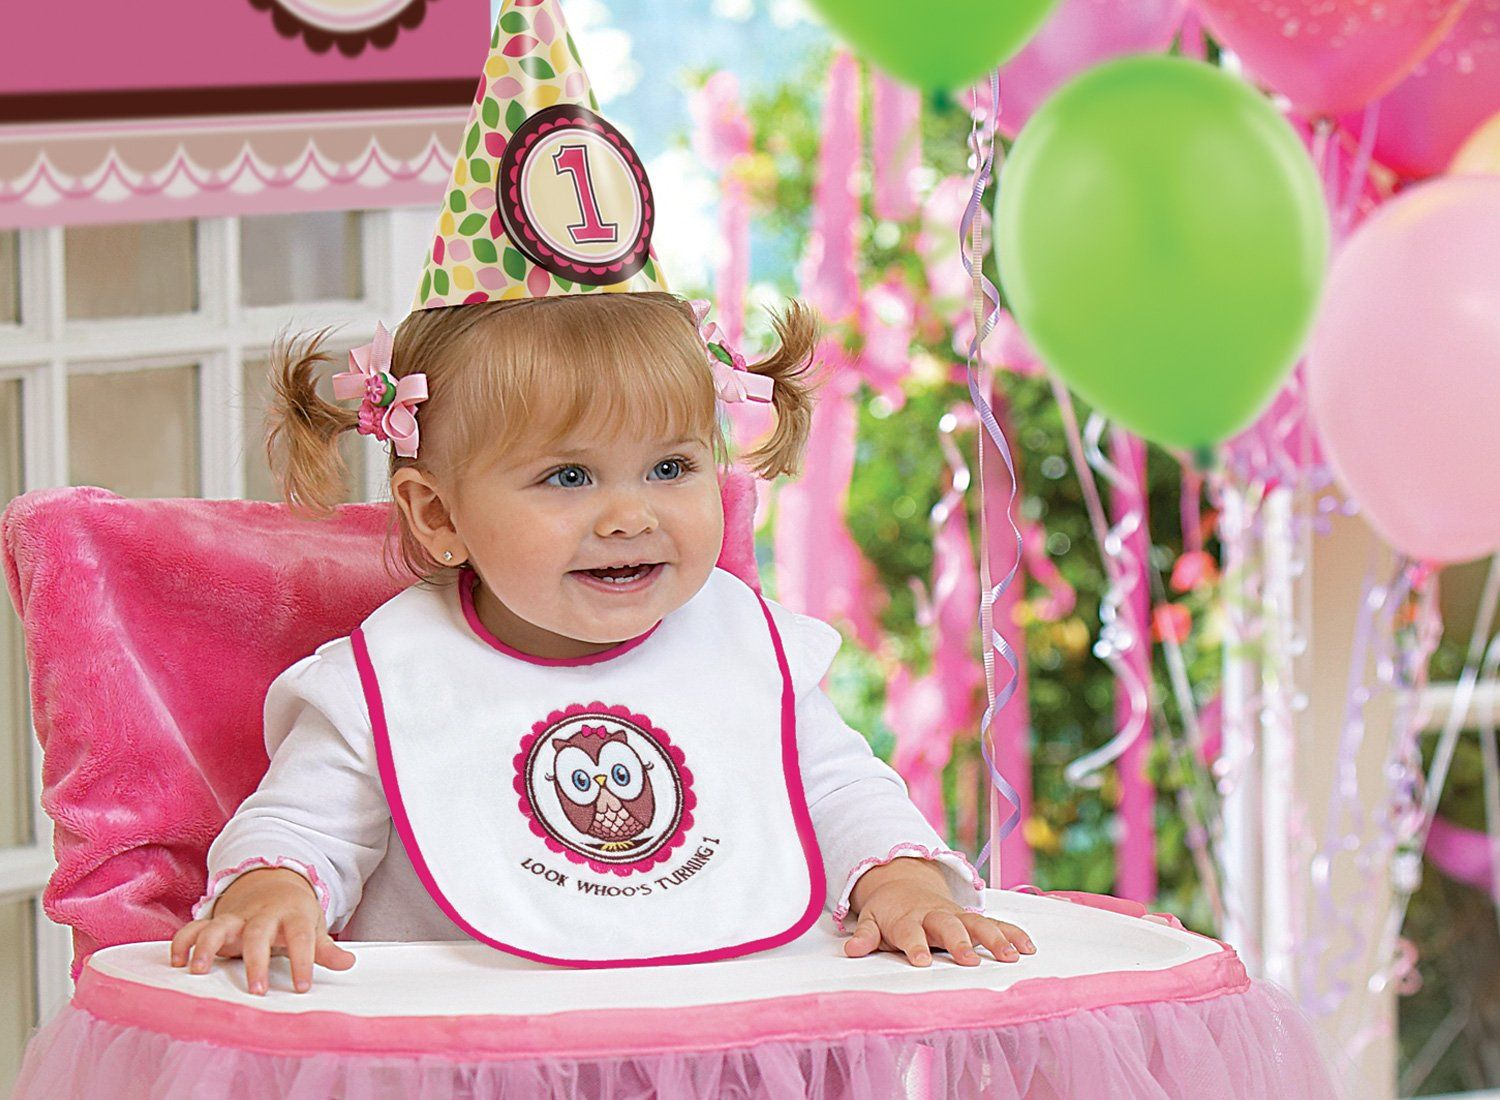 22 Fun Ideas For Your Baby Girl's First Birthday Photo